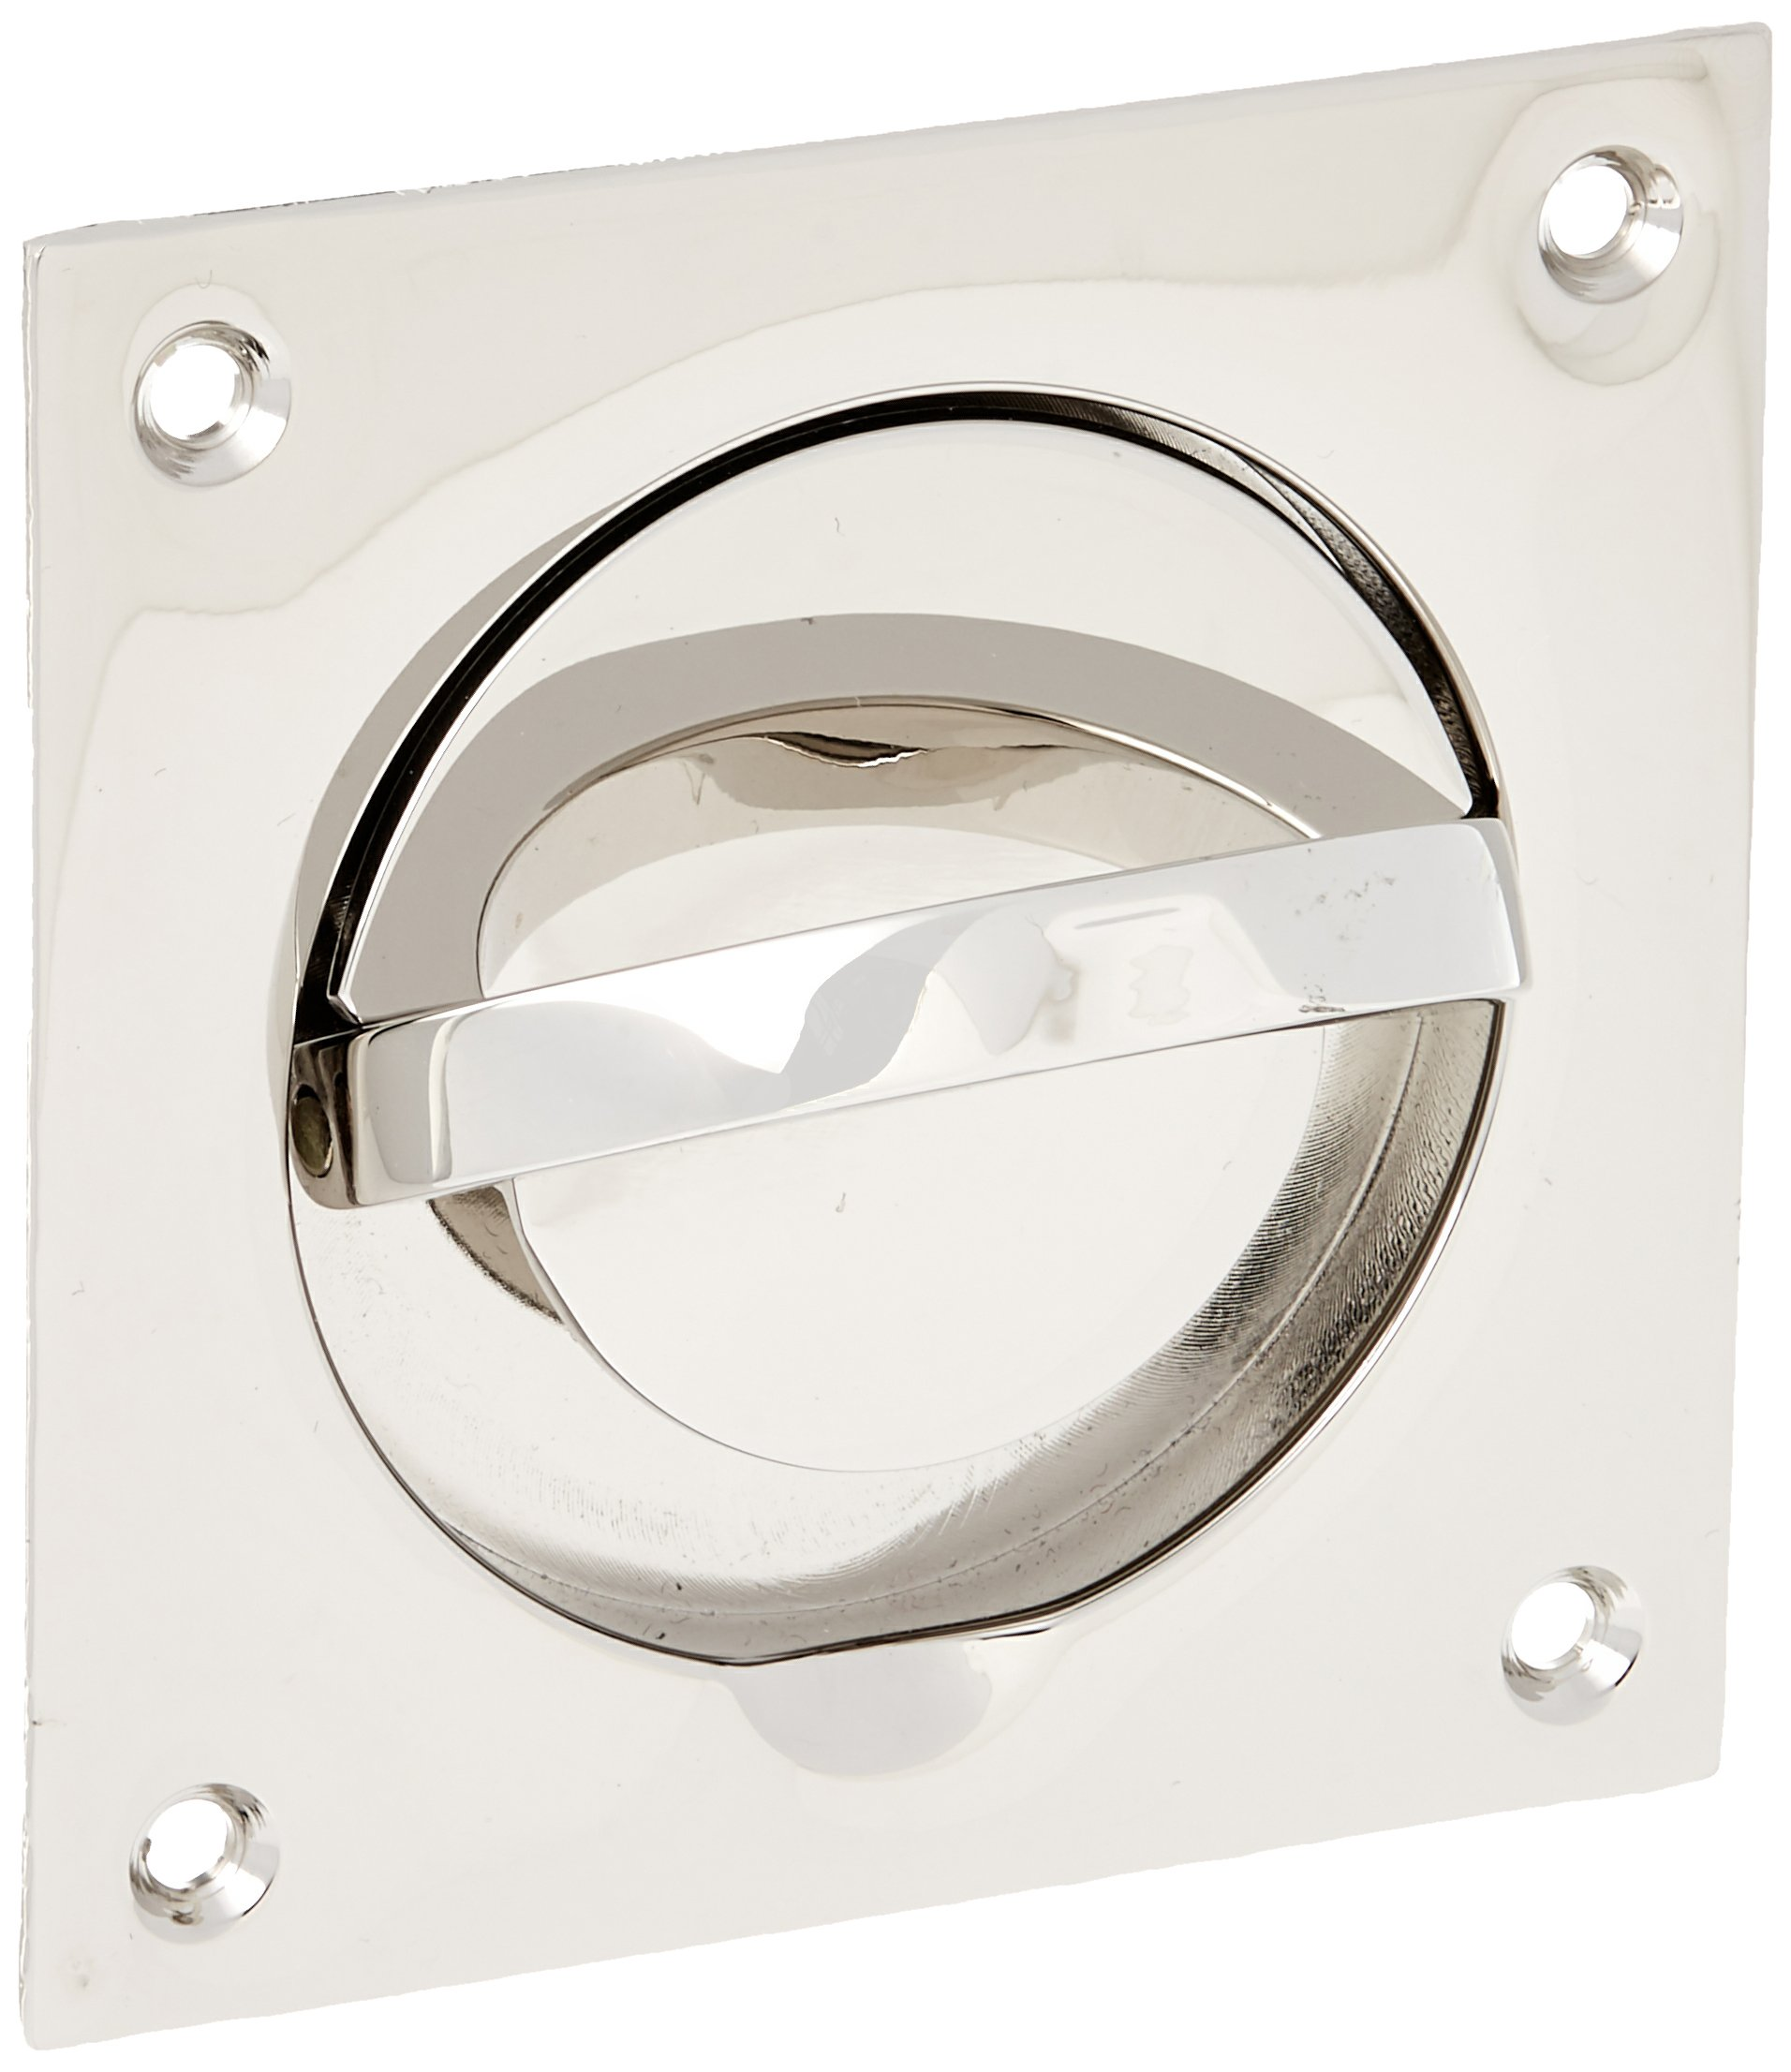 Baldwin 0397140SOL Flush Ring Pull with Solid Spindle, Bright Nickel by Baldwin (Image #2)